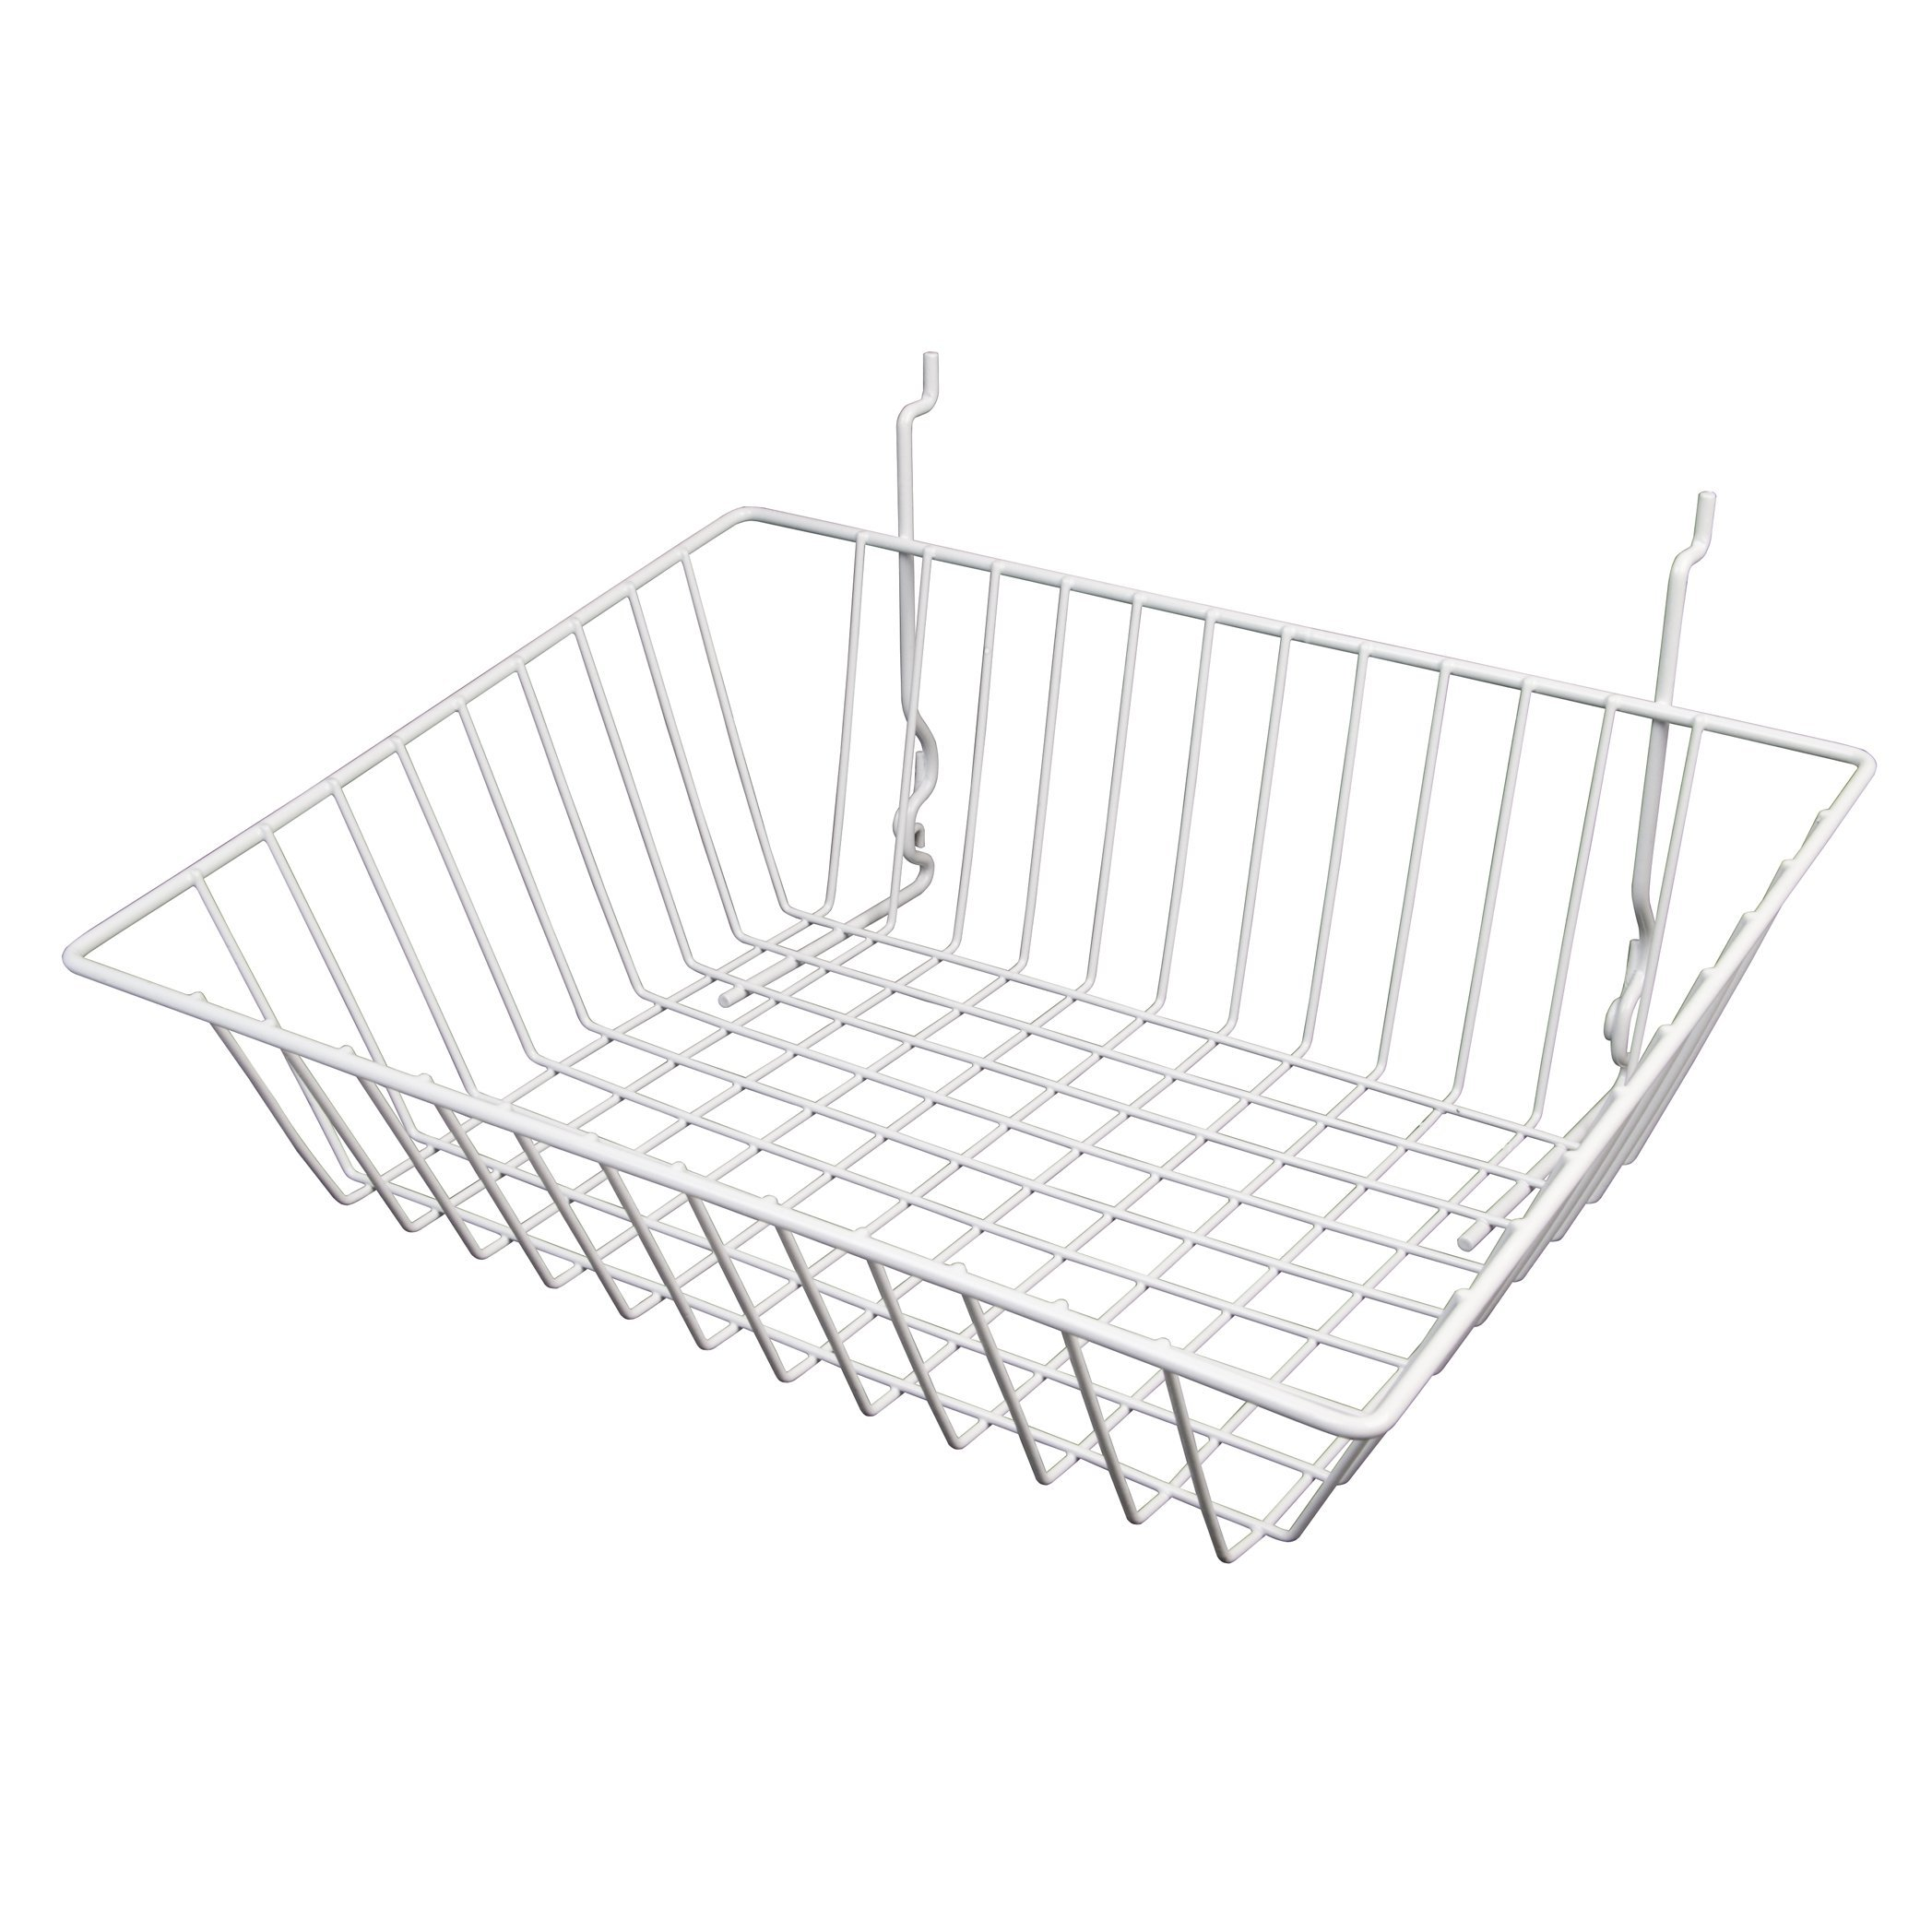 Econoco - White Multi-Fit Sloping Wire Basket for Slatwall, Pegboard or Gridwall (Set of 6) Metal Semi-Gloss Basket, White